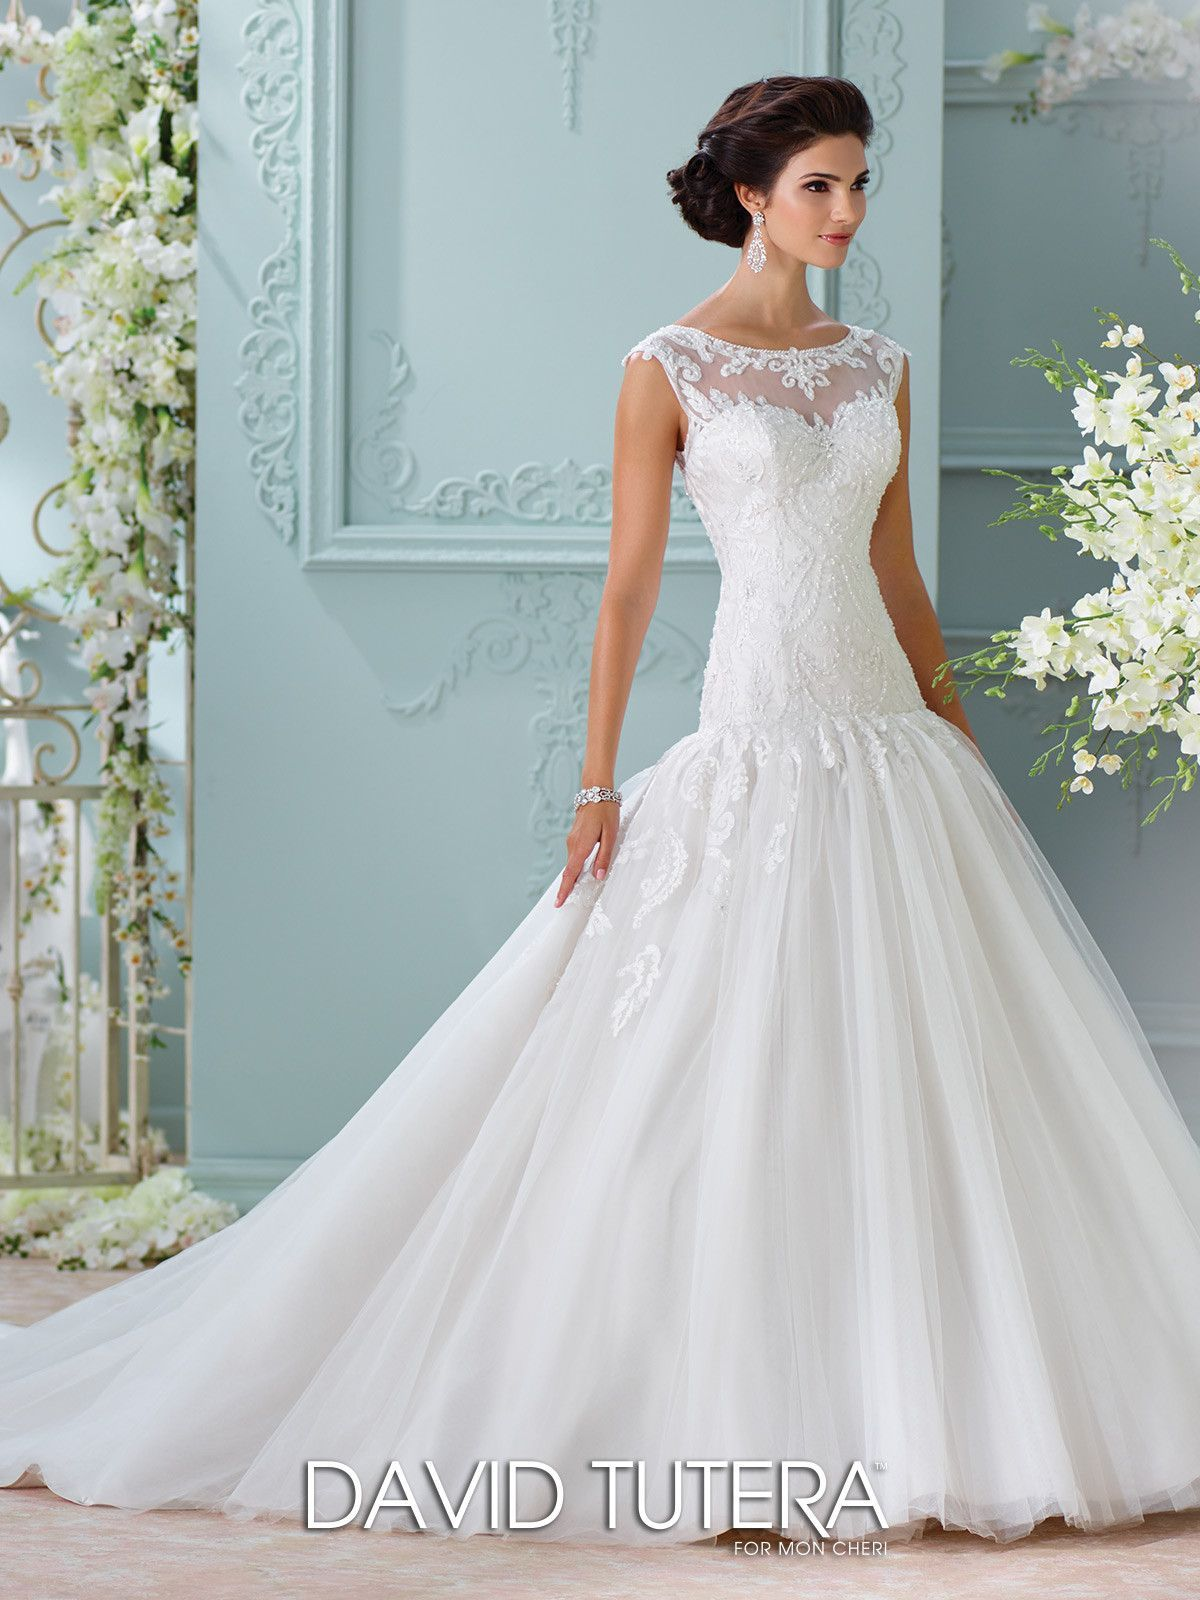 David Tutera - Chiara - 116226 - All Dressed Up, Bridal Gown | David ...